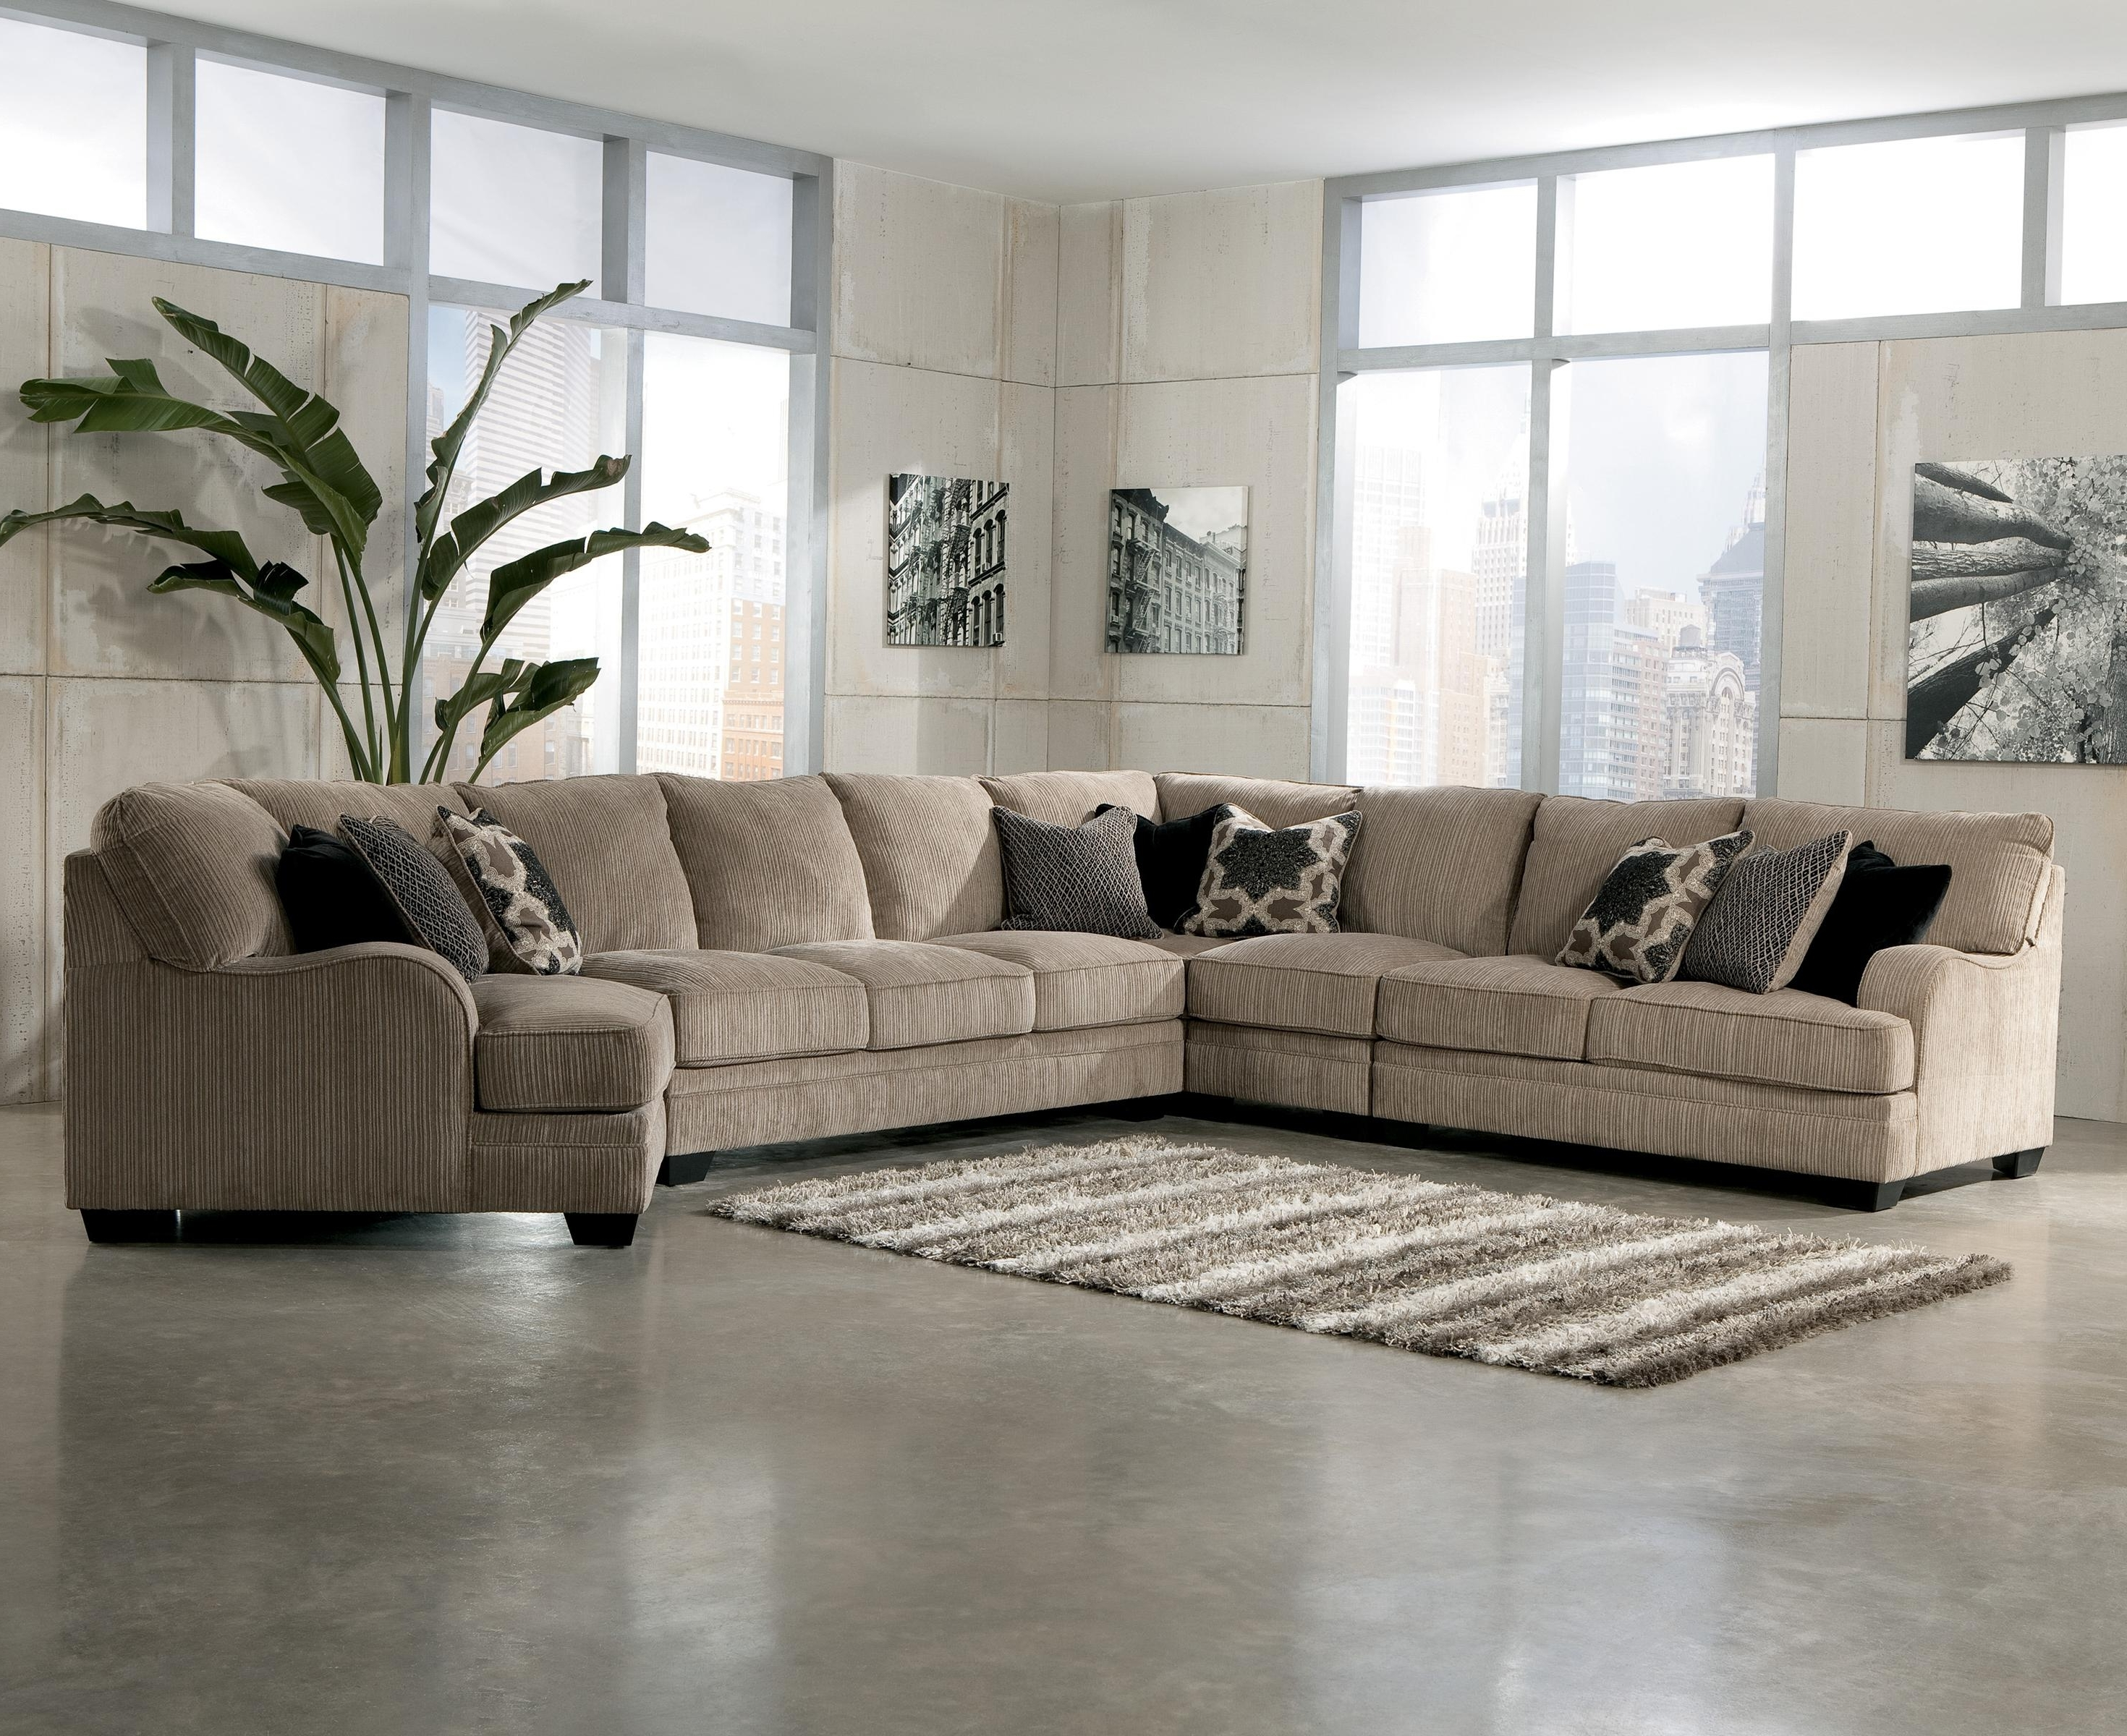 Grand Rapids Mi Sectional Sofas Inside 2017 Signature Designashley Katisha – Platinum 5 Piece Sectional (View 4 of 15)